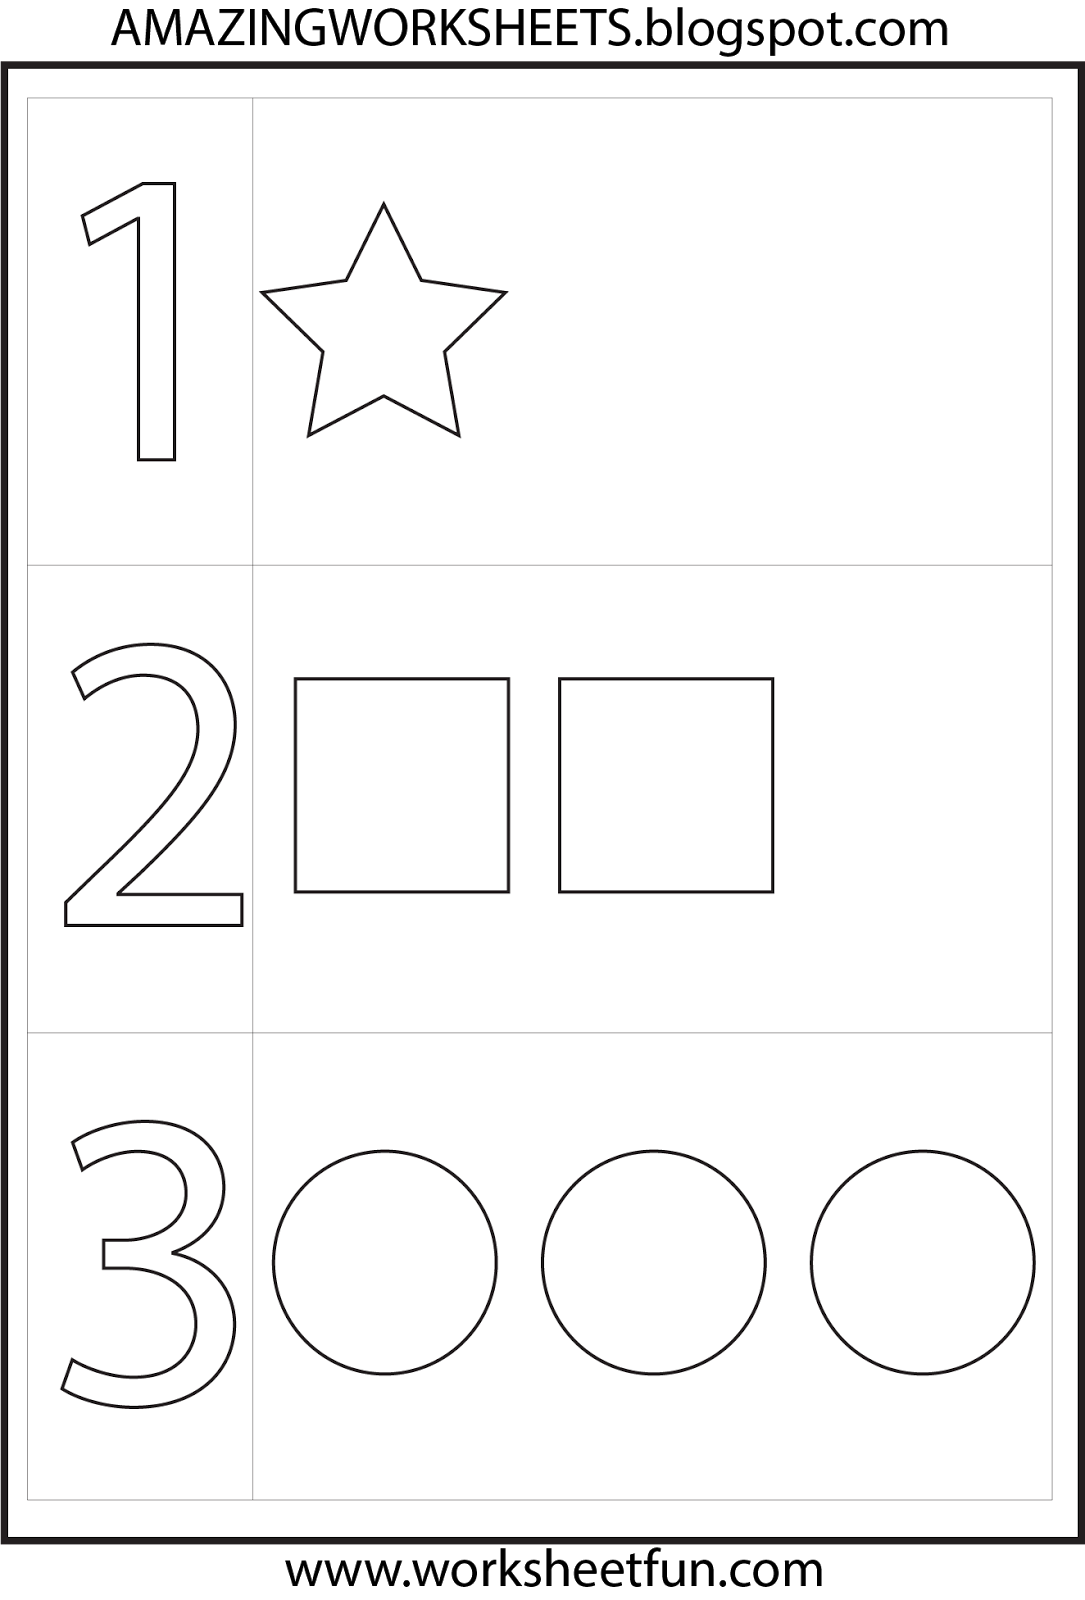 numbers preschool | Toddler fun | Pinterest | Numbers preschool ...